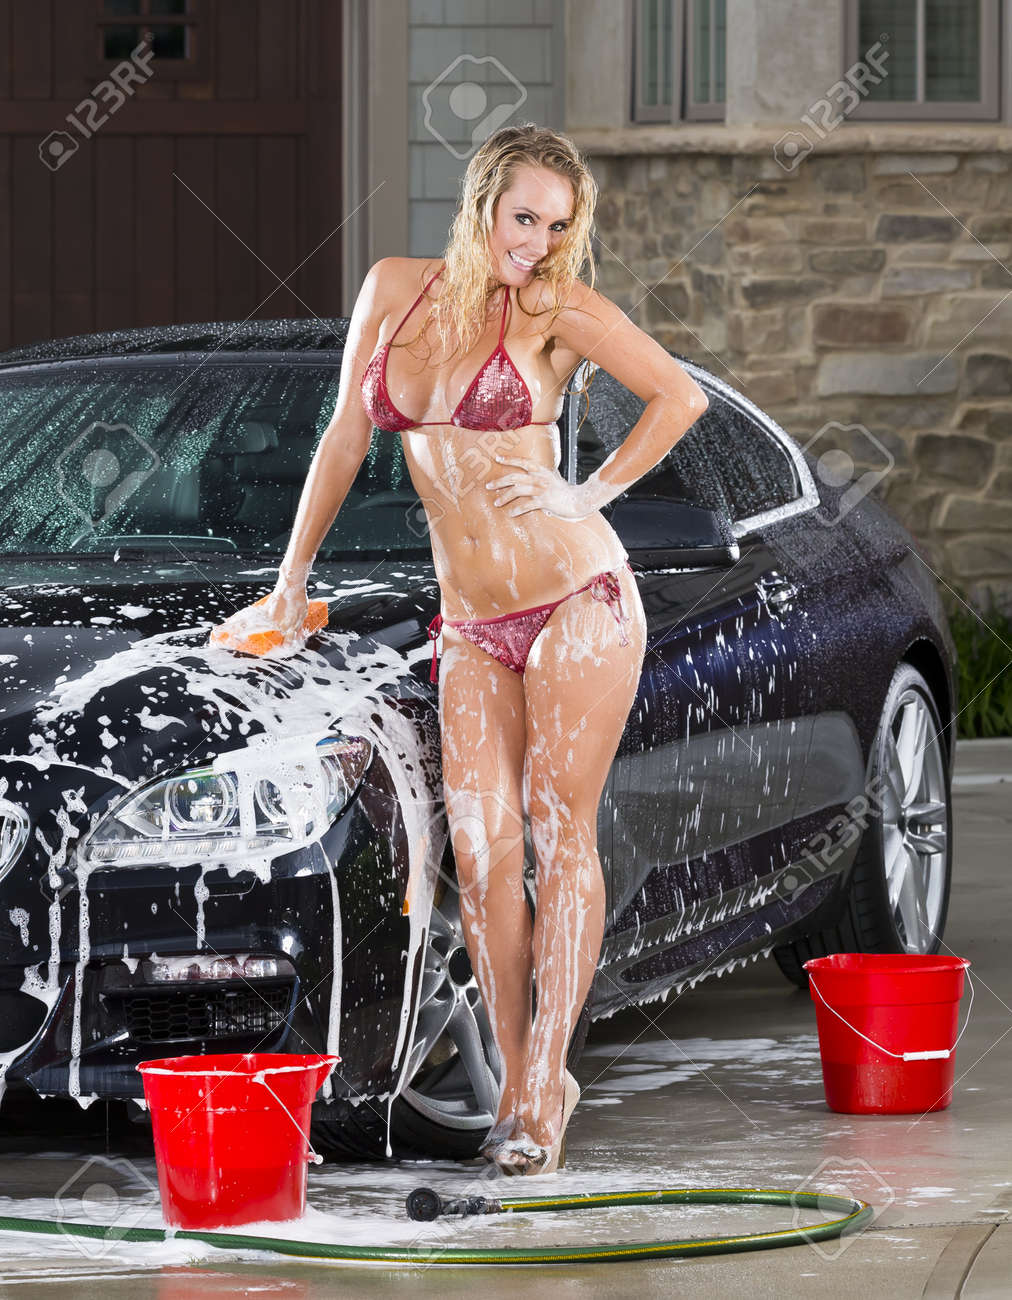 Beautiful bikini models wash a car on a summer day Stock Photo - 14428632